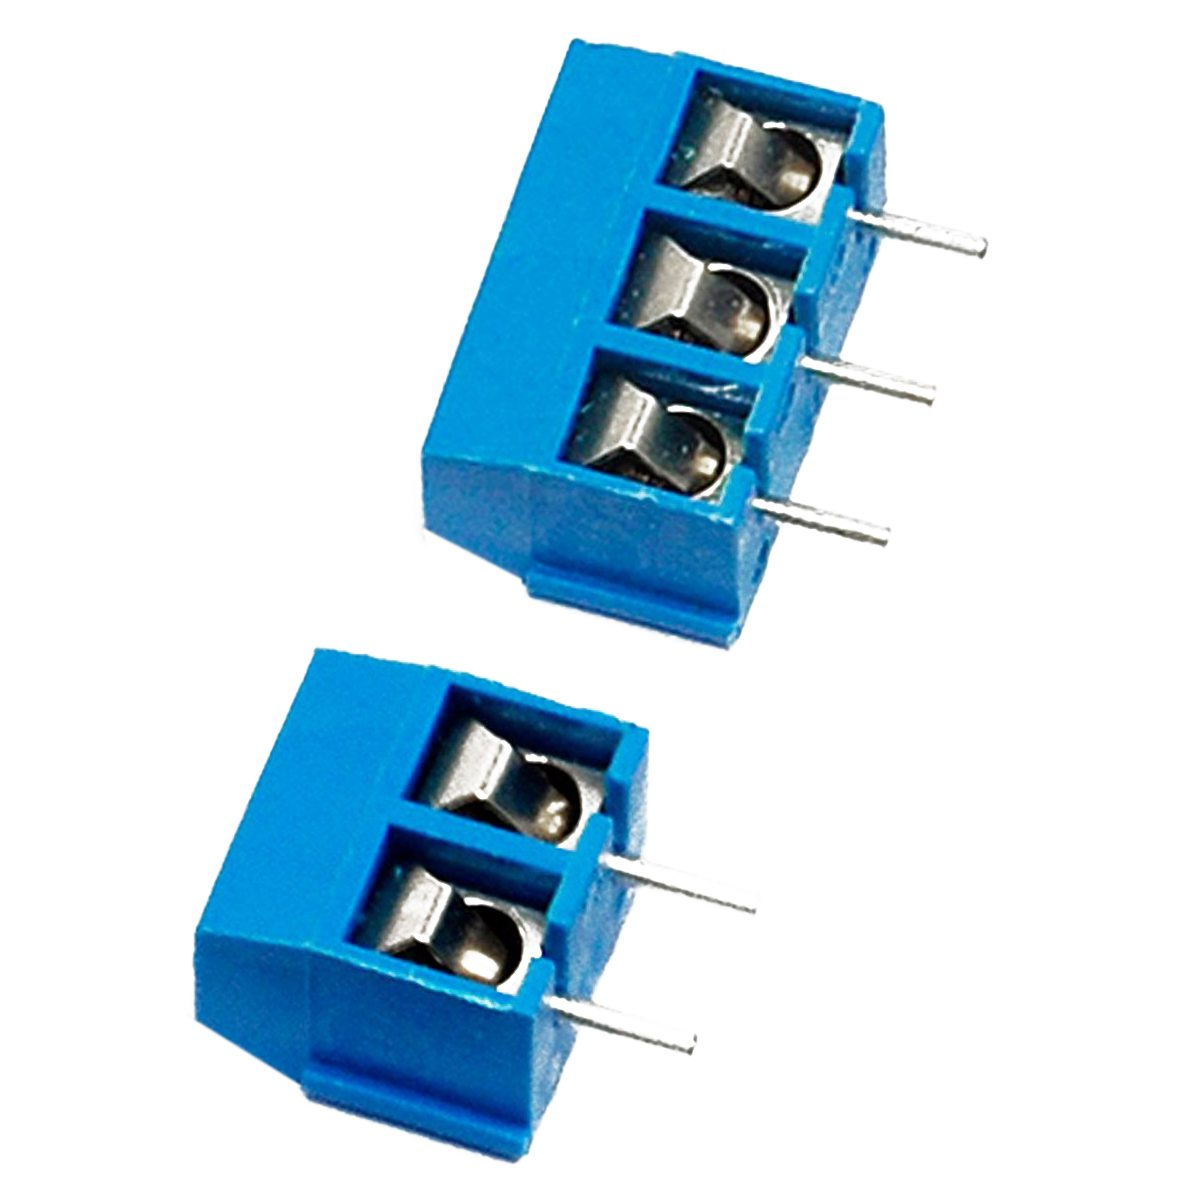 THGS 2 Pin and 3 Pin Screw Terminal Block Connector 5mm Pitch for Arduino (Pack of 40pcs) EK8365